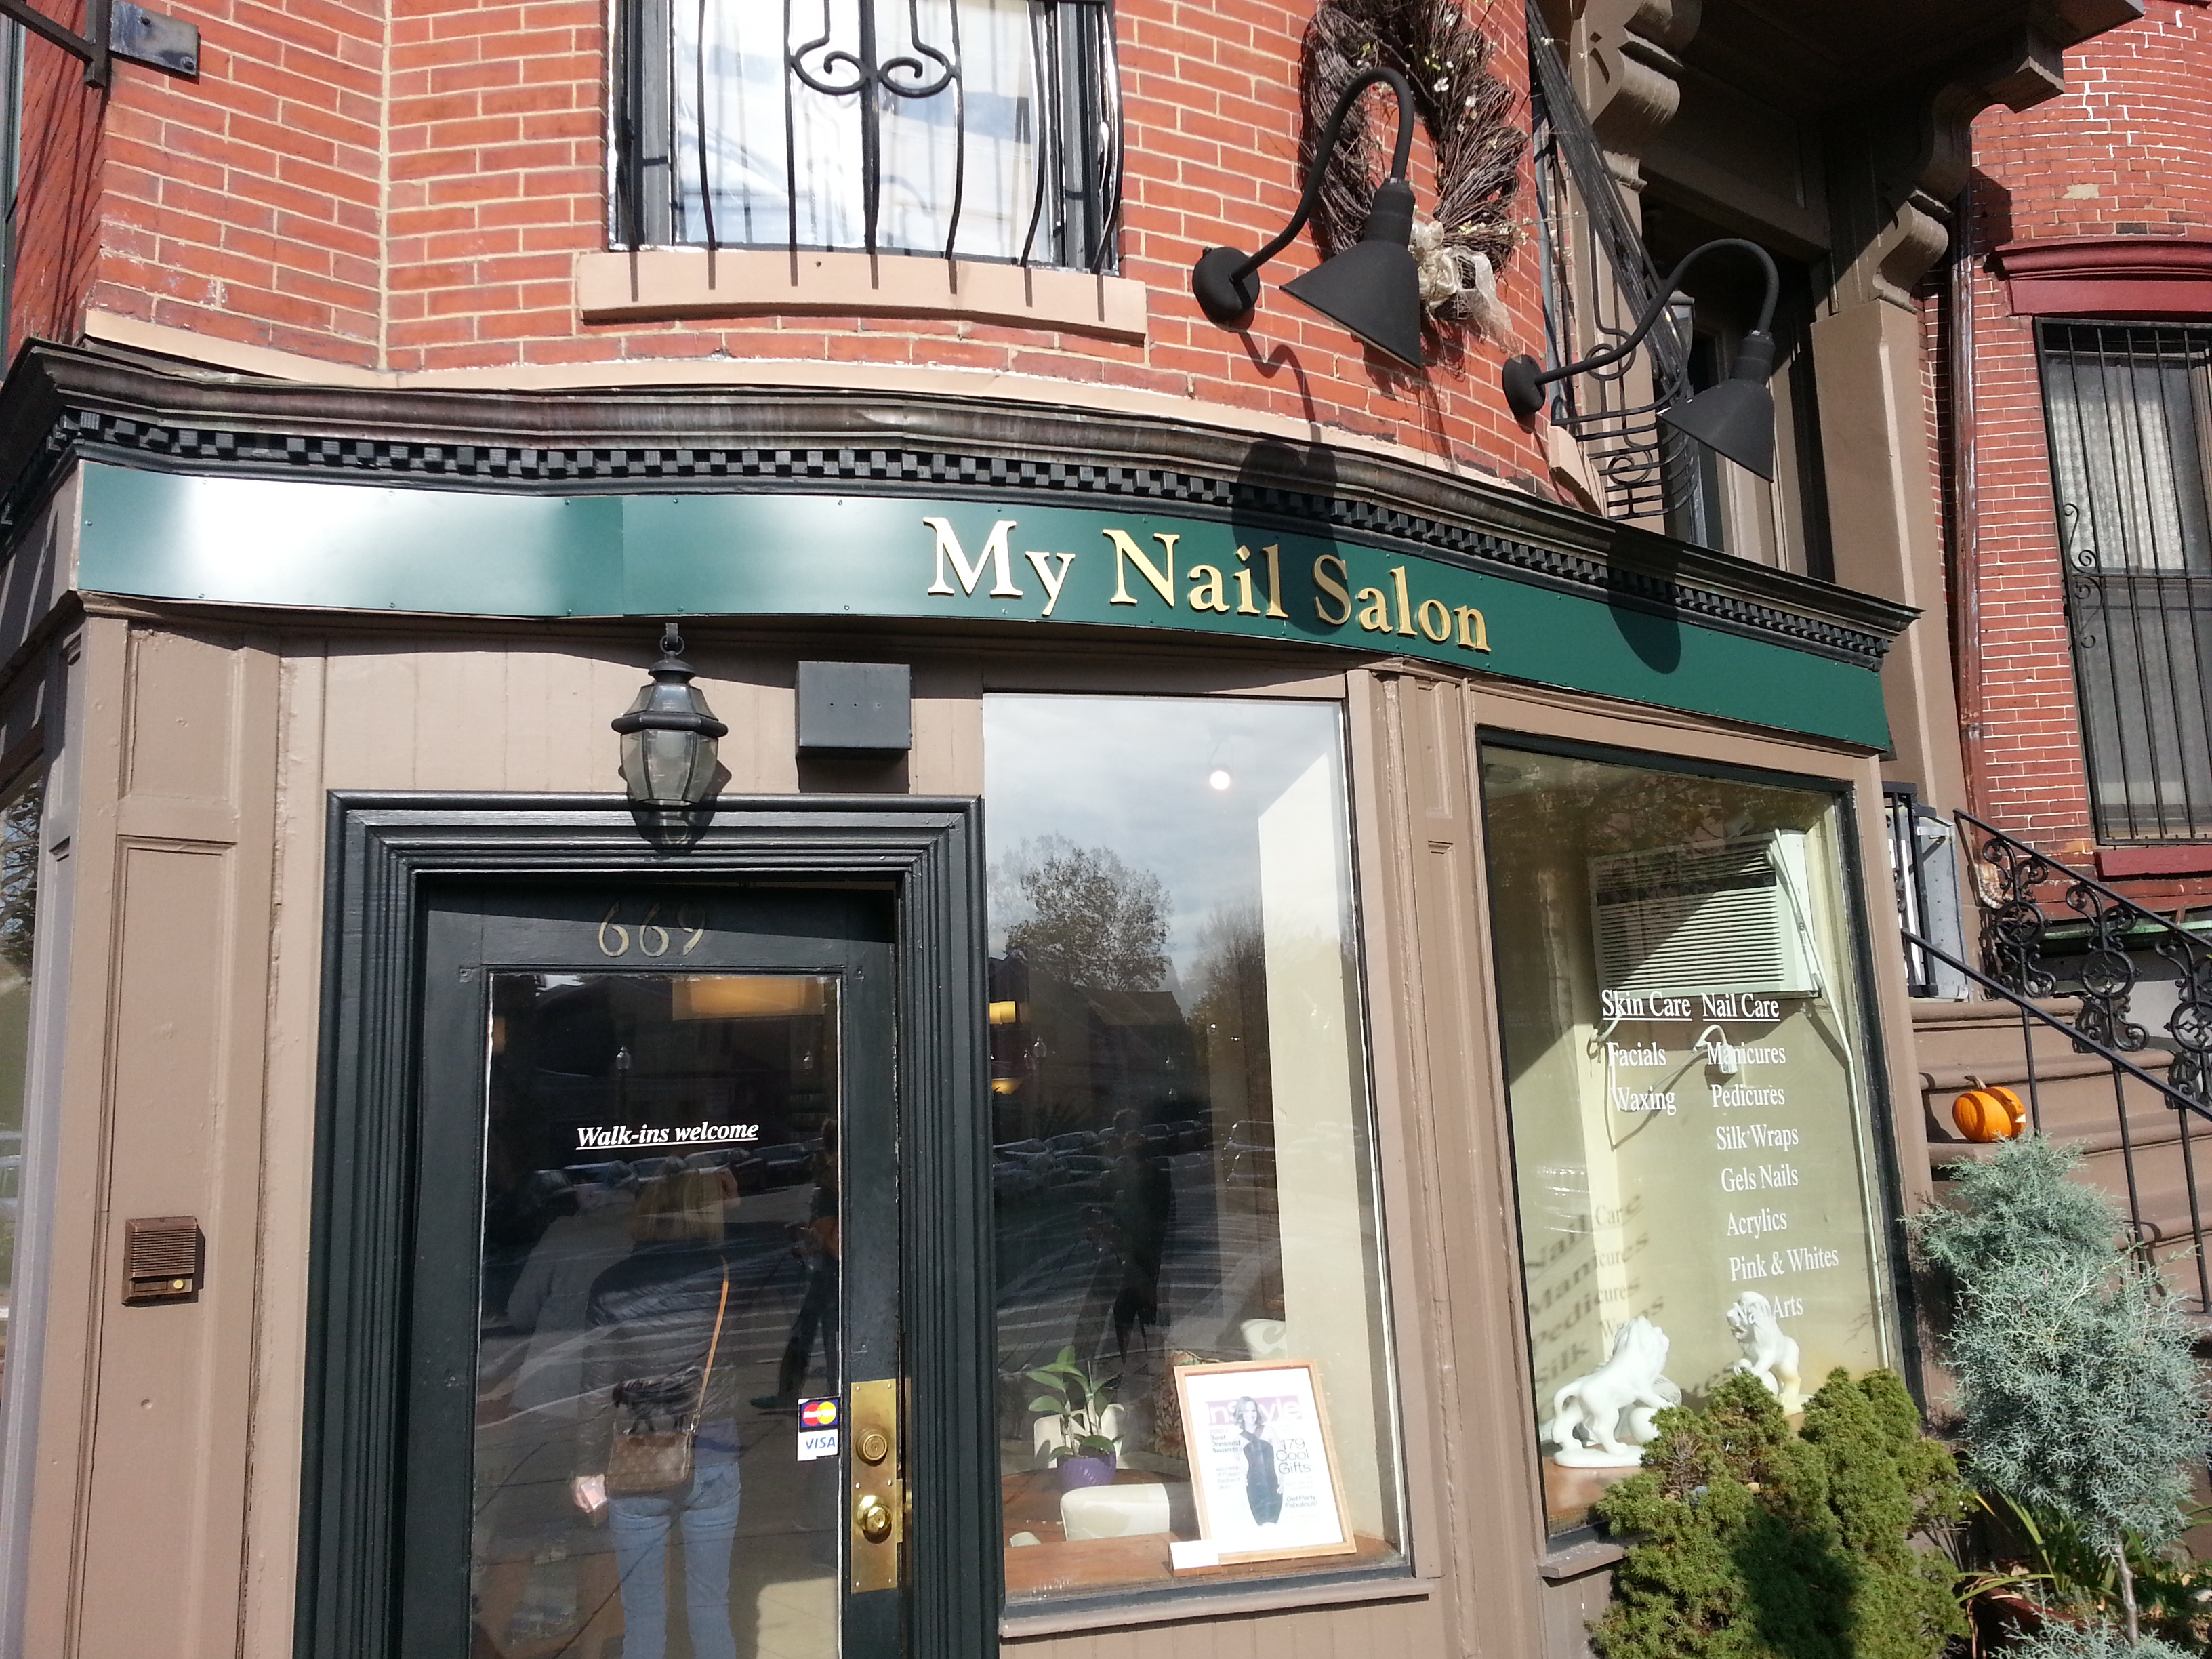 My Nail Salon